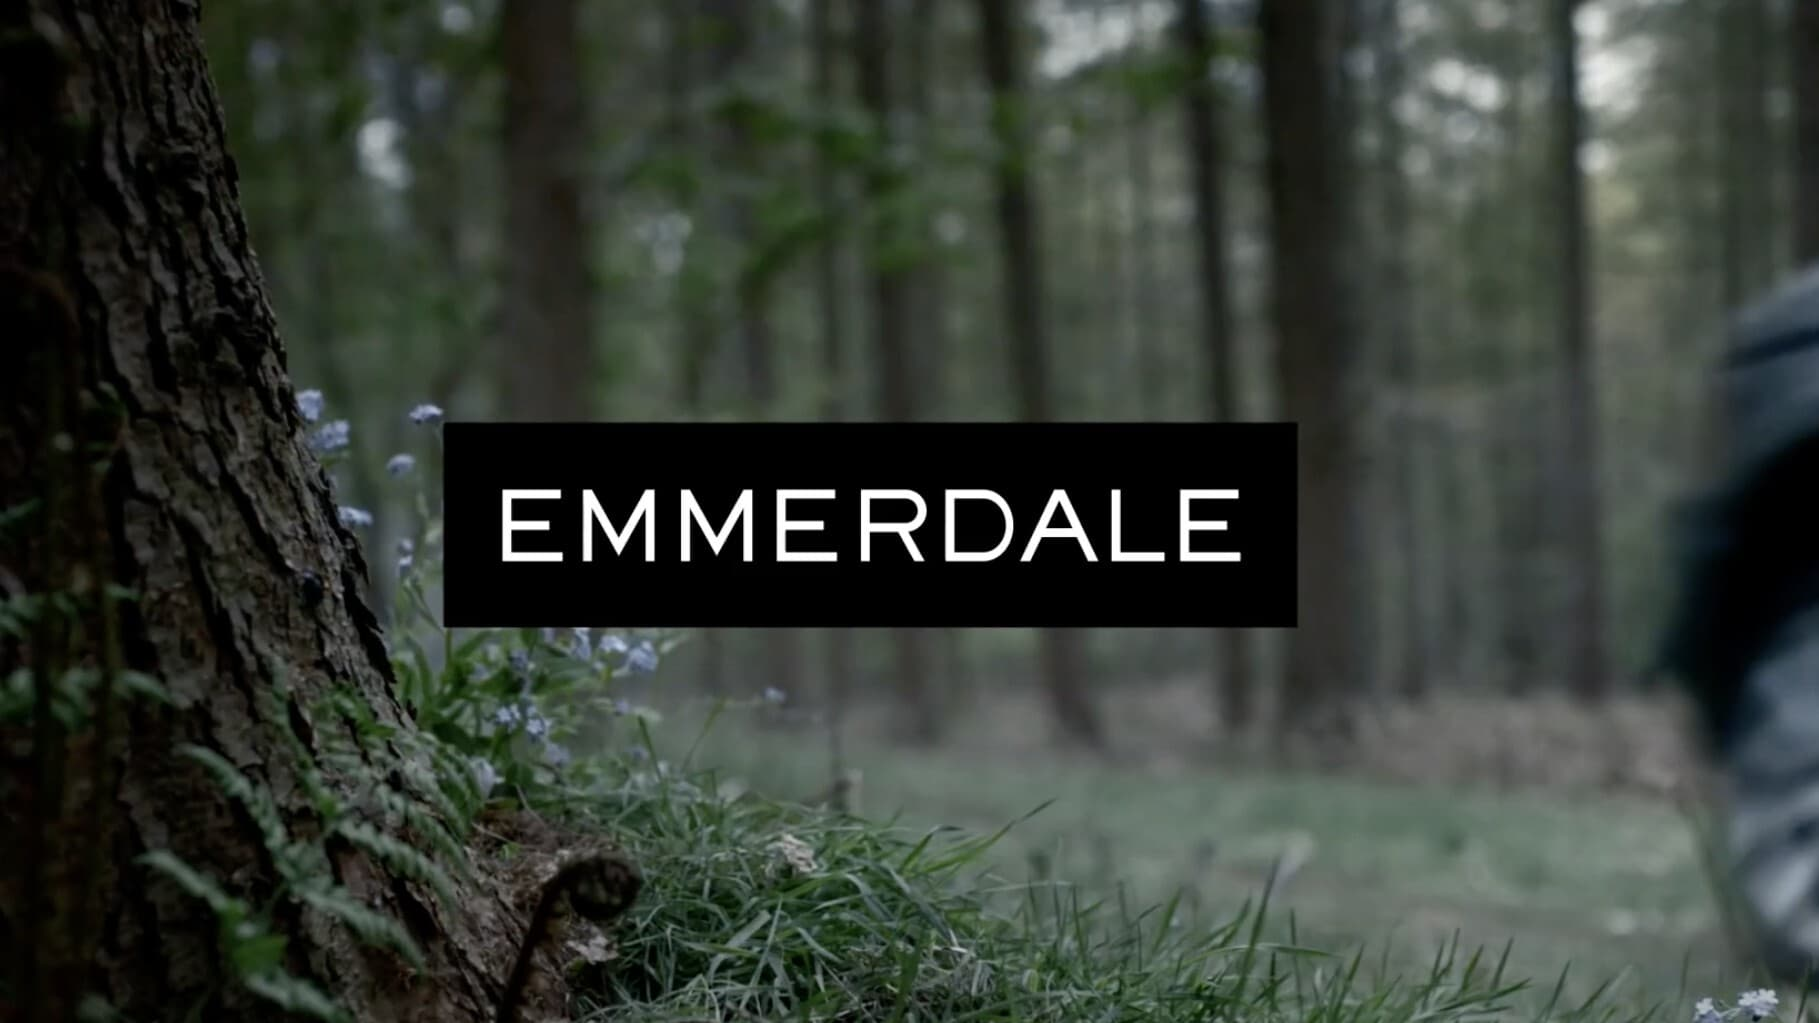 Emmerdale - Season 27 Episode 162 : 31st Dec 1998